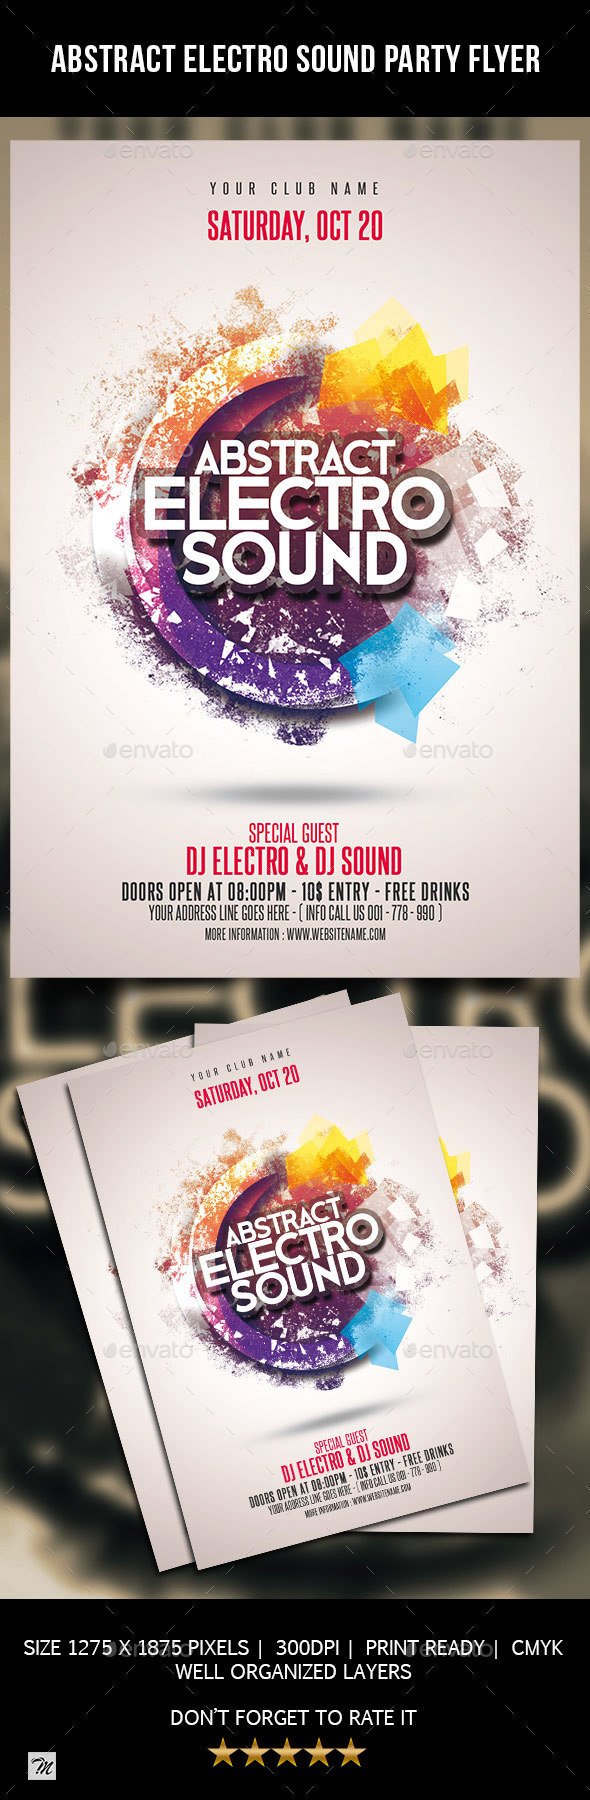 Abstract Electro Sound Party Flyer - Clubs & Parties Events